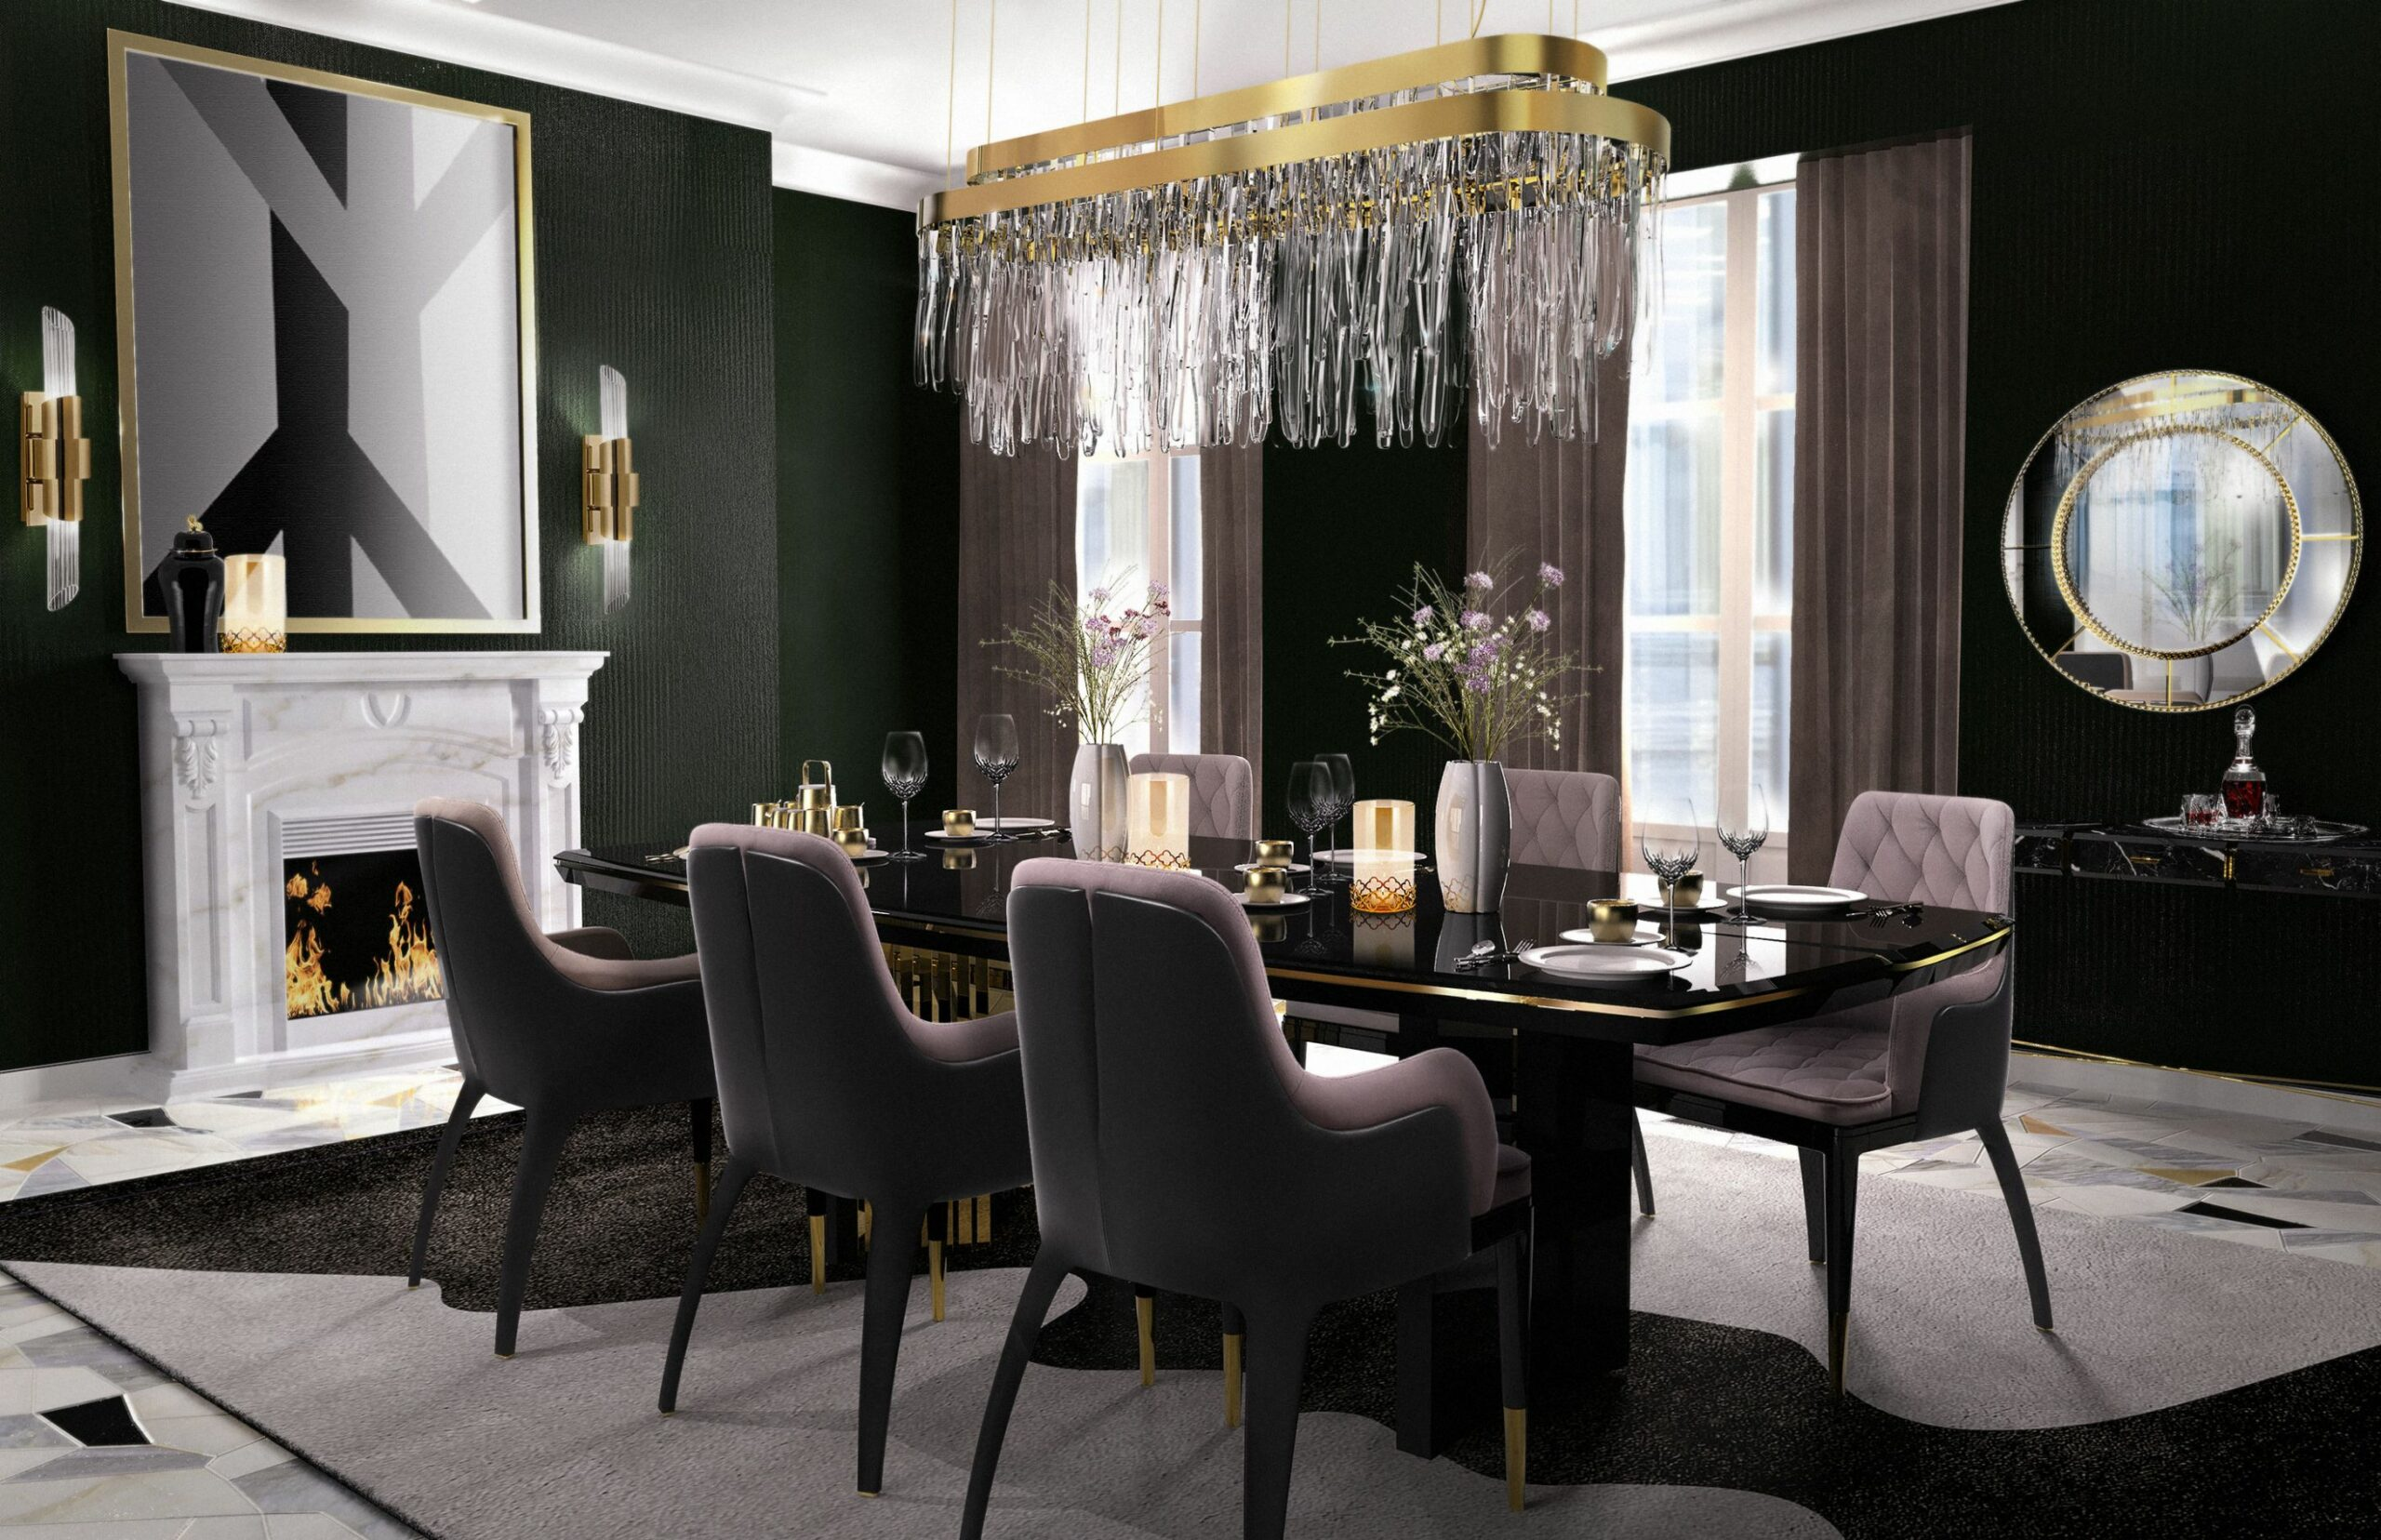 Elegant Dining Room Ideas You Have To Use this Fall - dining room update ideas